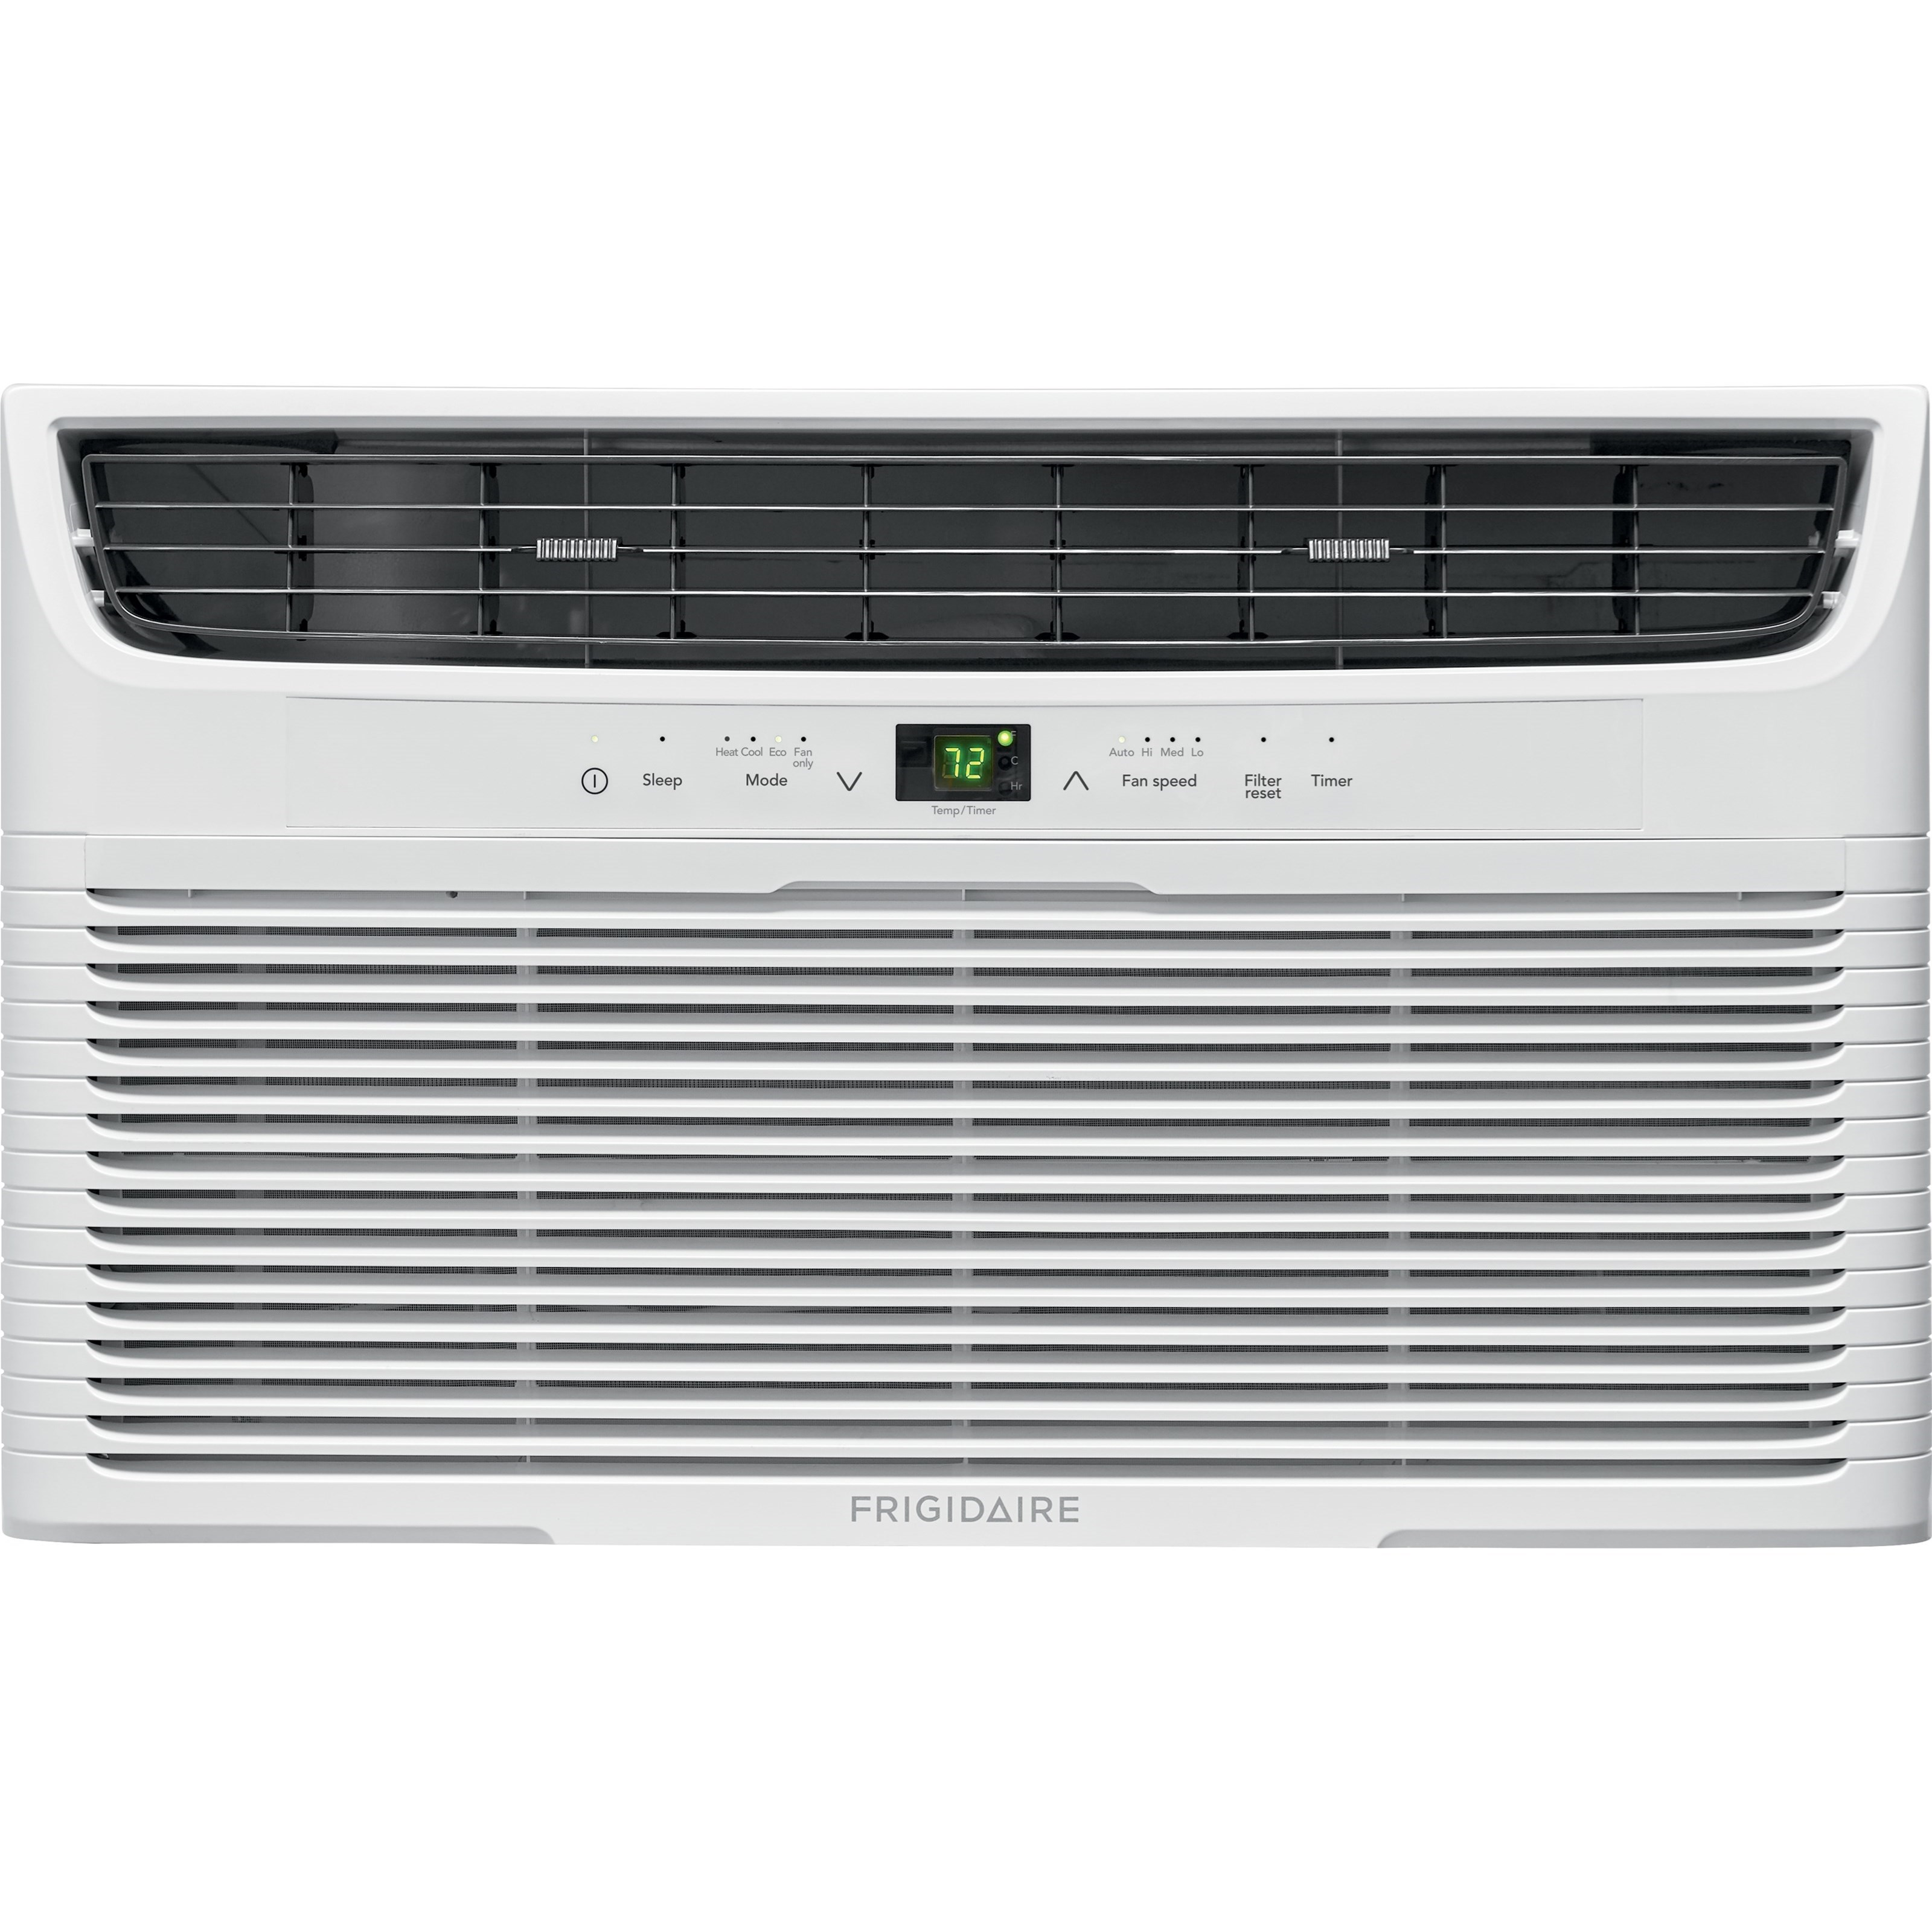 Air Conditioners 12,000 BTU Built-In Room Air Conditioner by Frigidaire at Fisher Home Furnishings